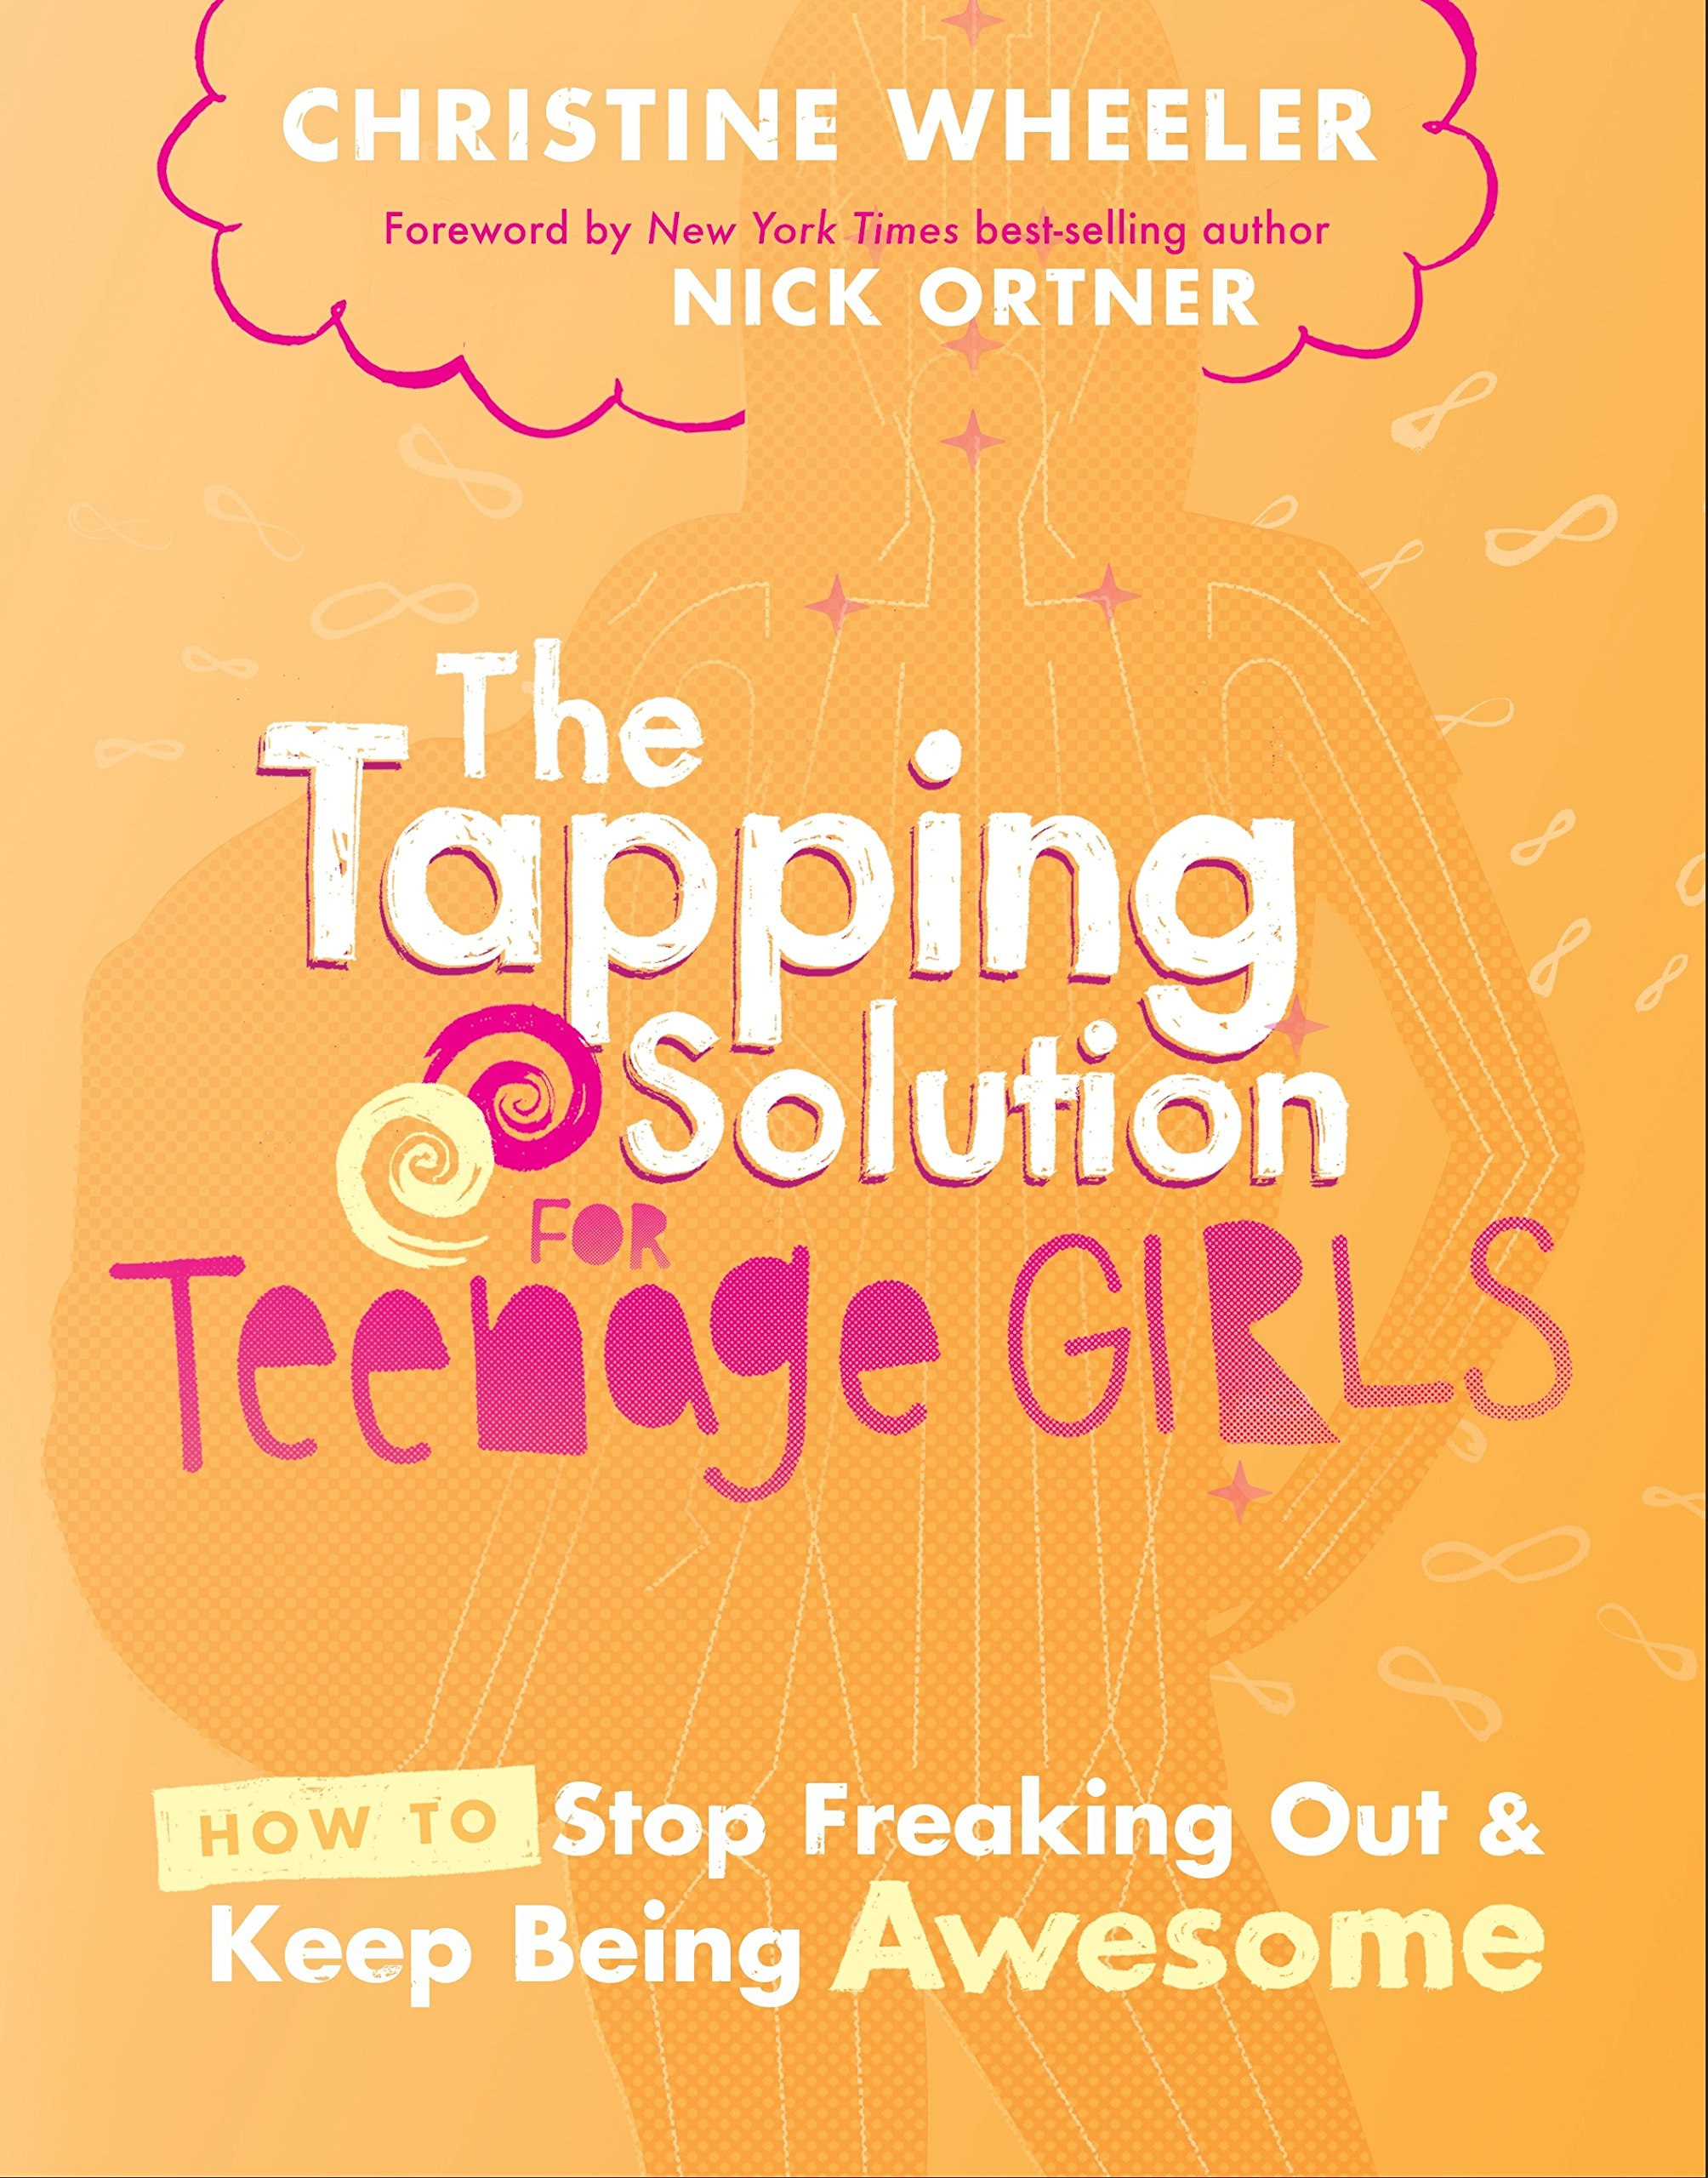 Tapping Solution Teenage Girls Freaking product image